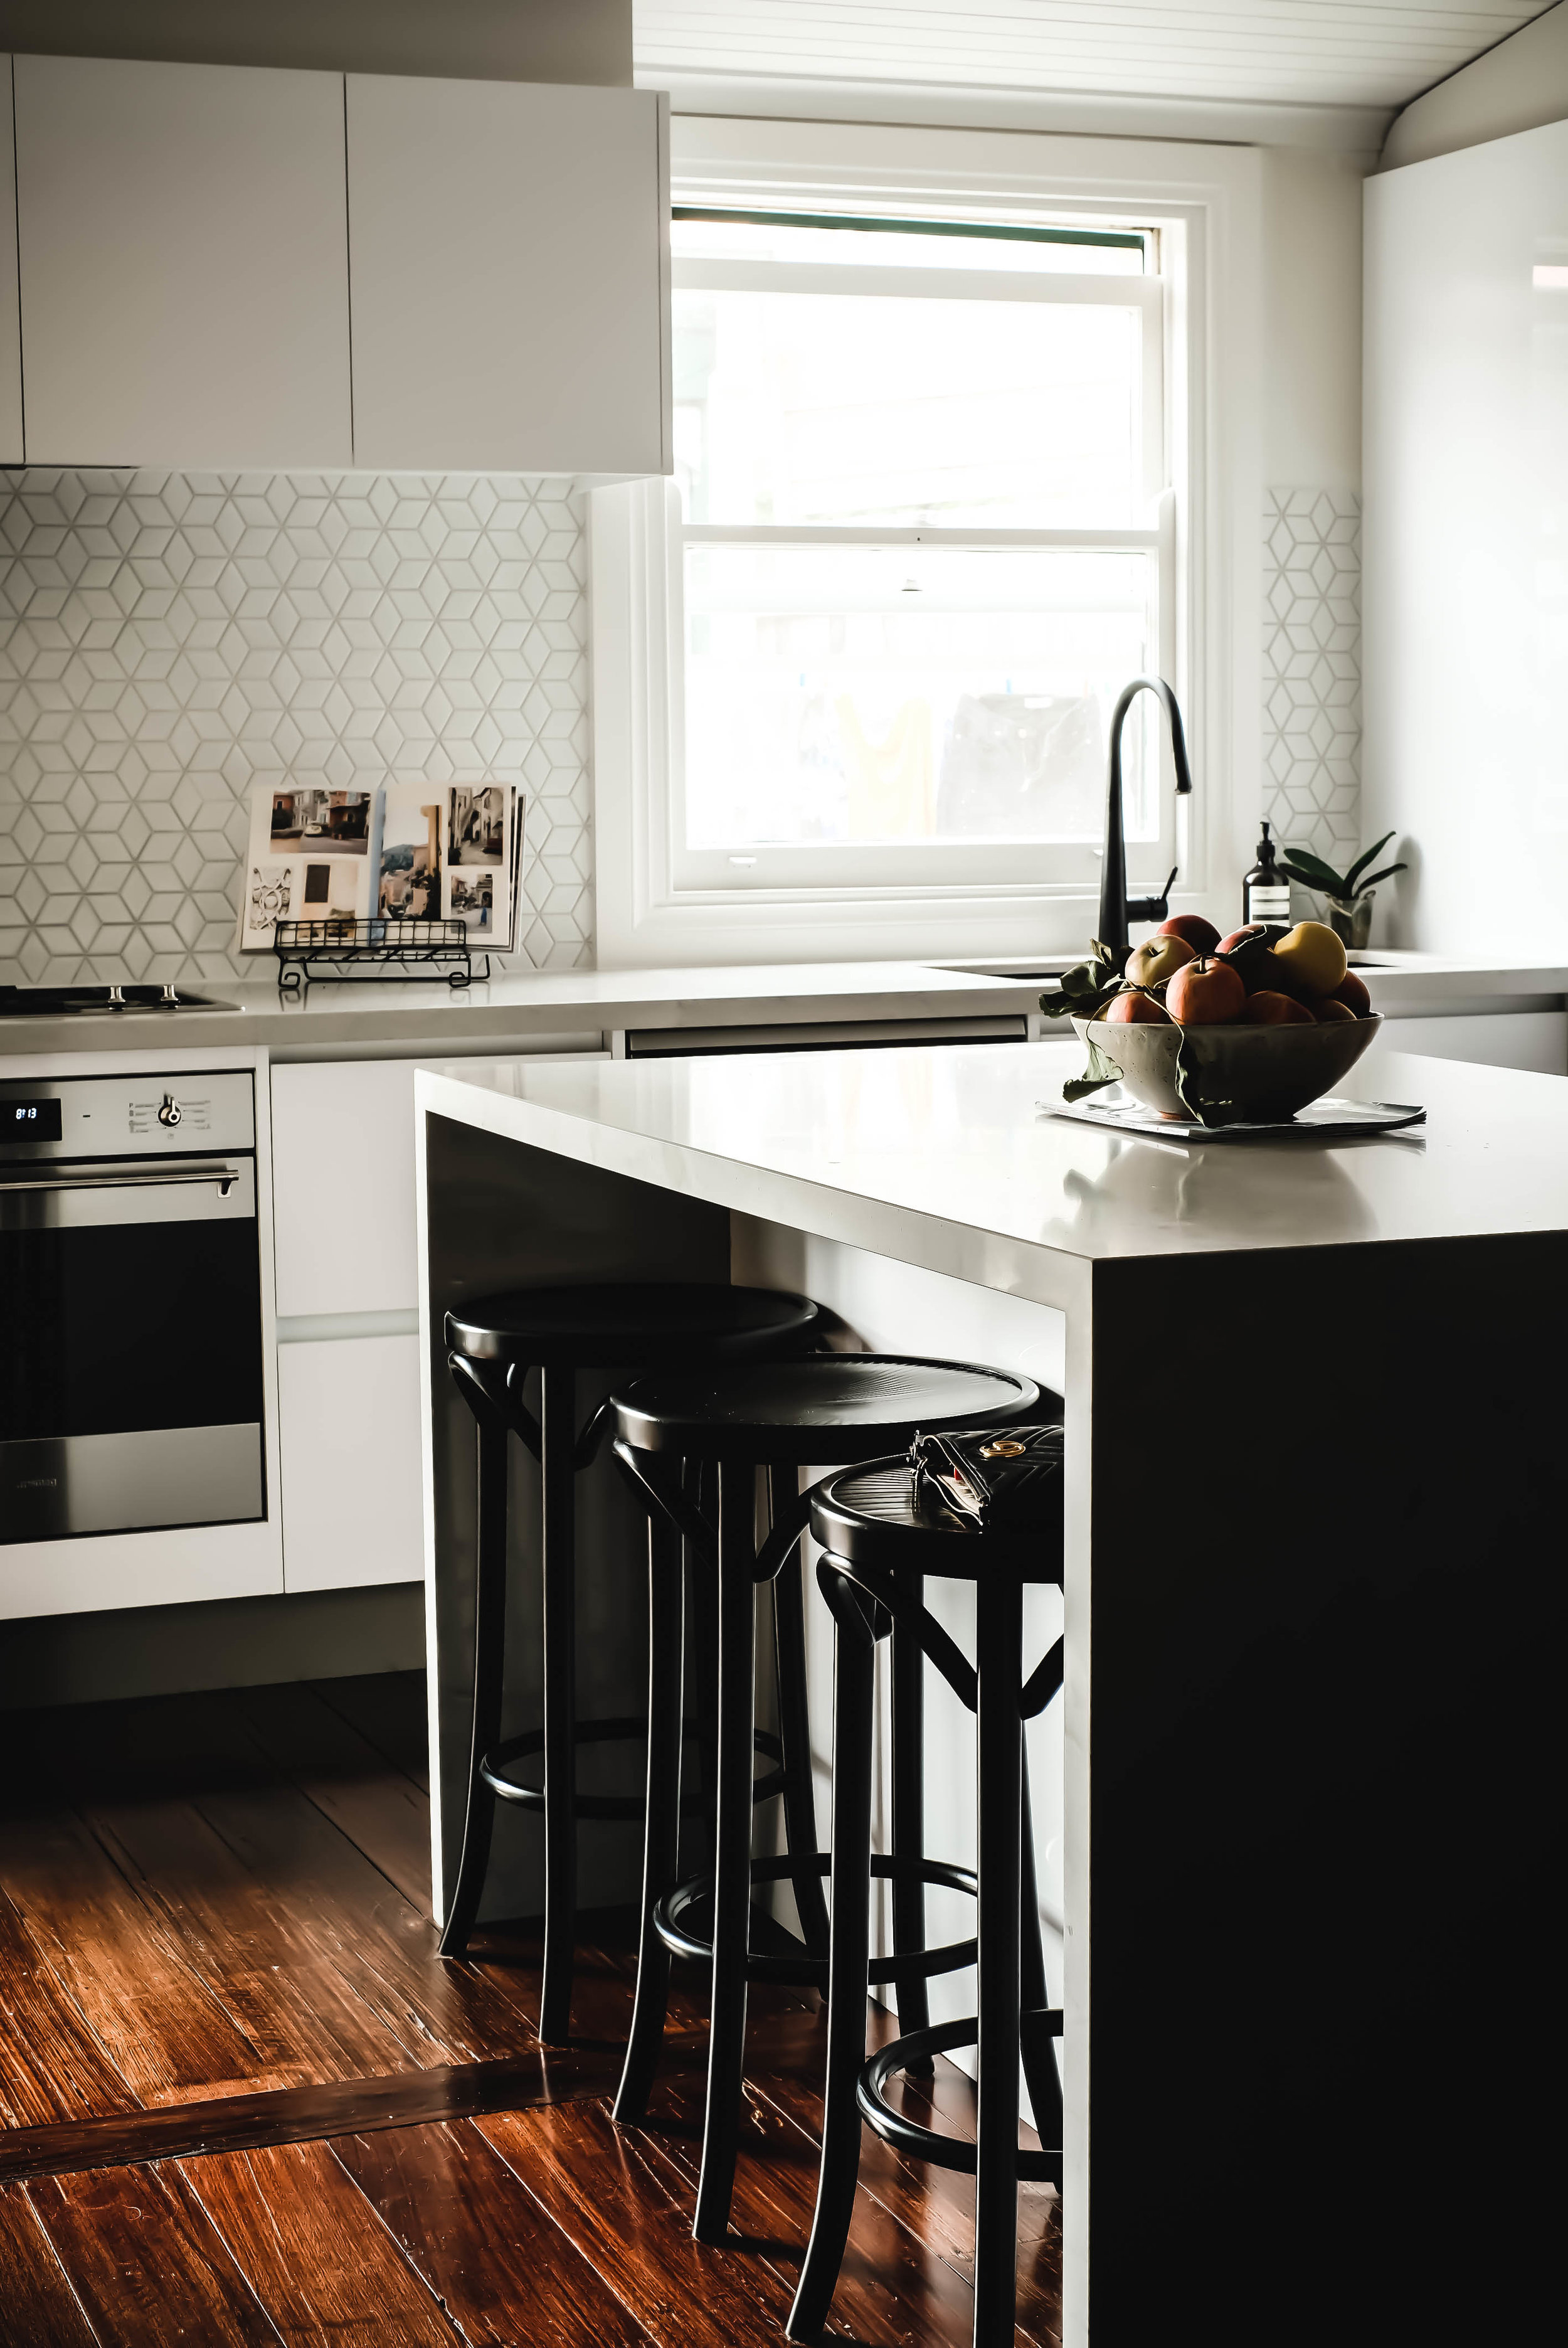 Kitchen renovation (2 of 2)-2.jpg